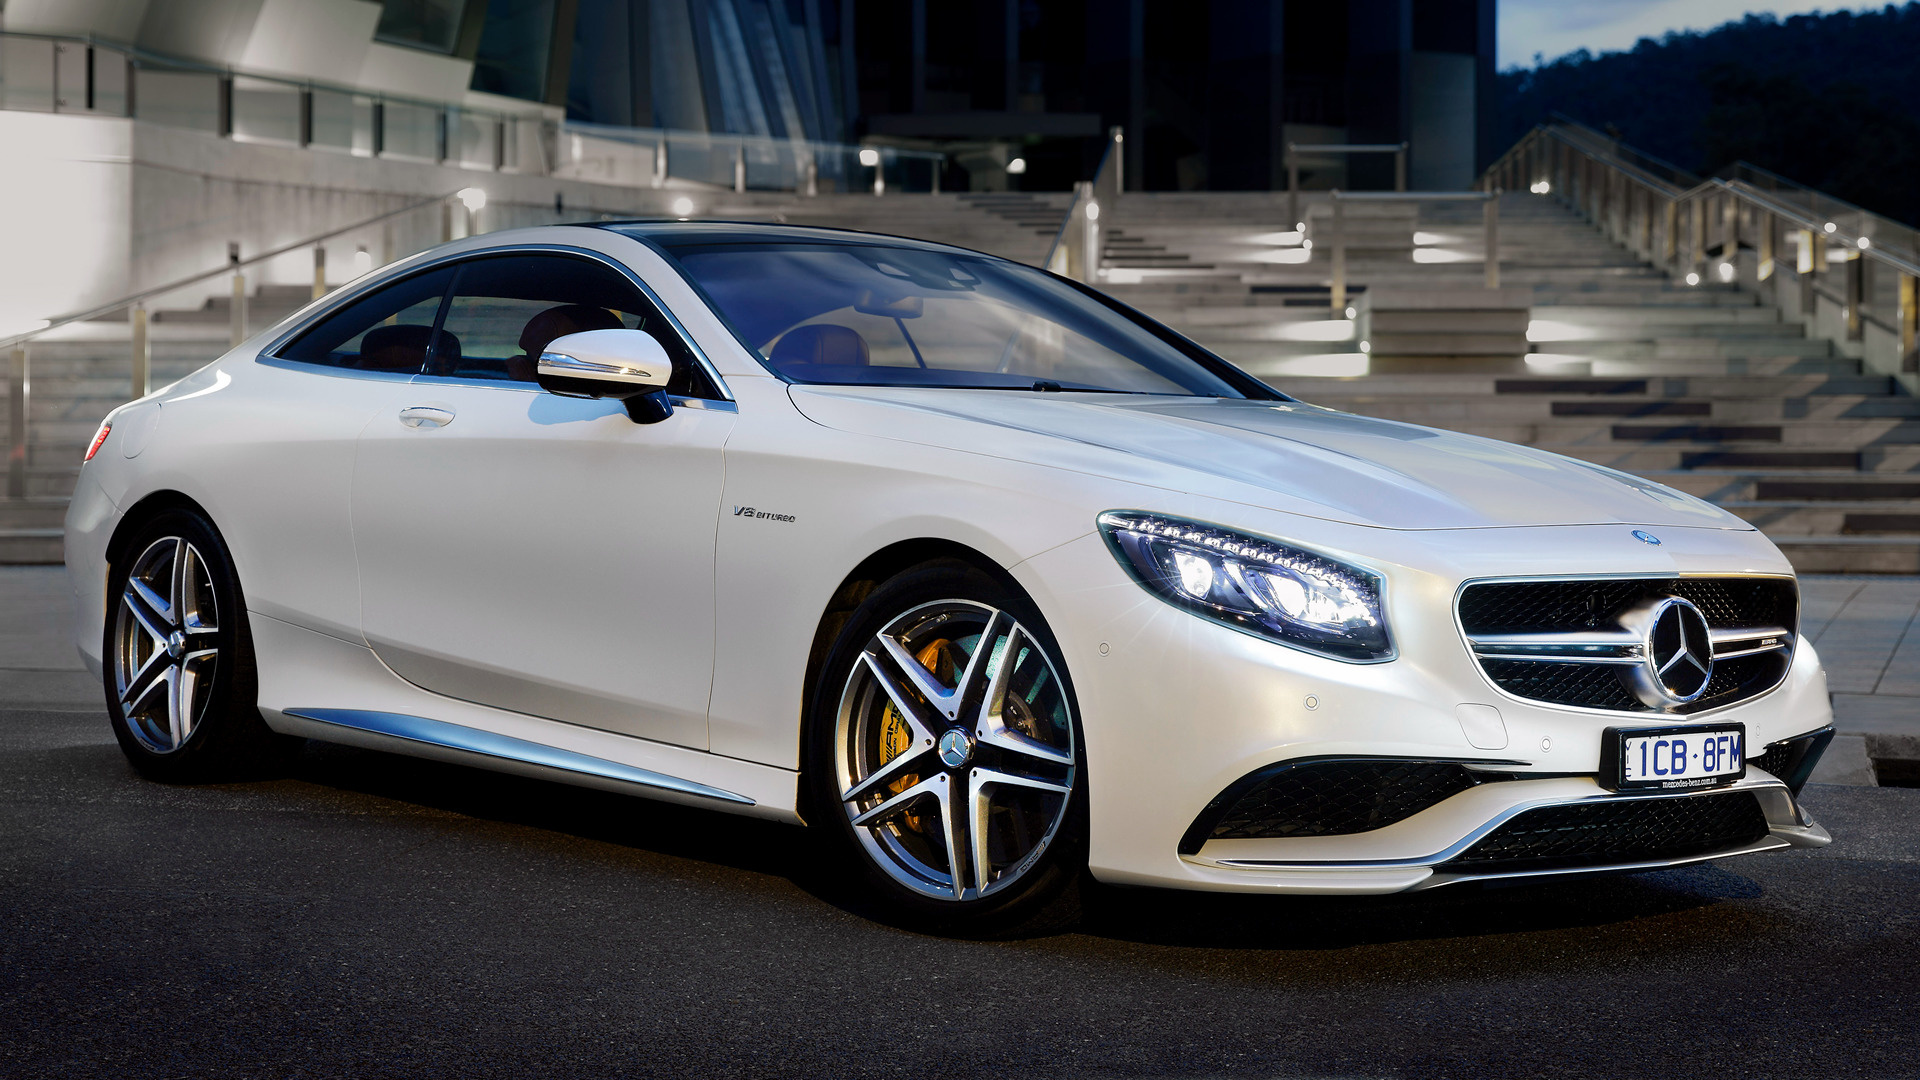 Mercedes-Benz S 63 AMG Coupe (2014) AU Wallpapers and HD Images - Car Pixel